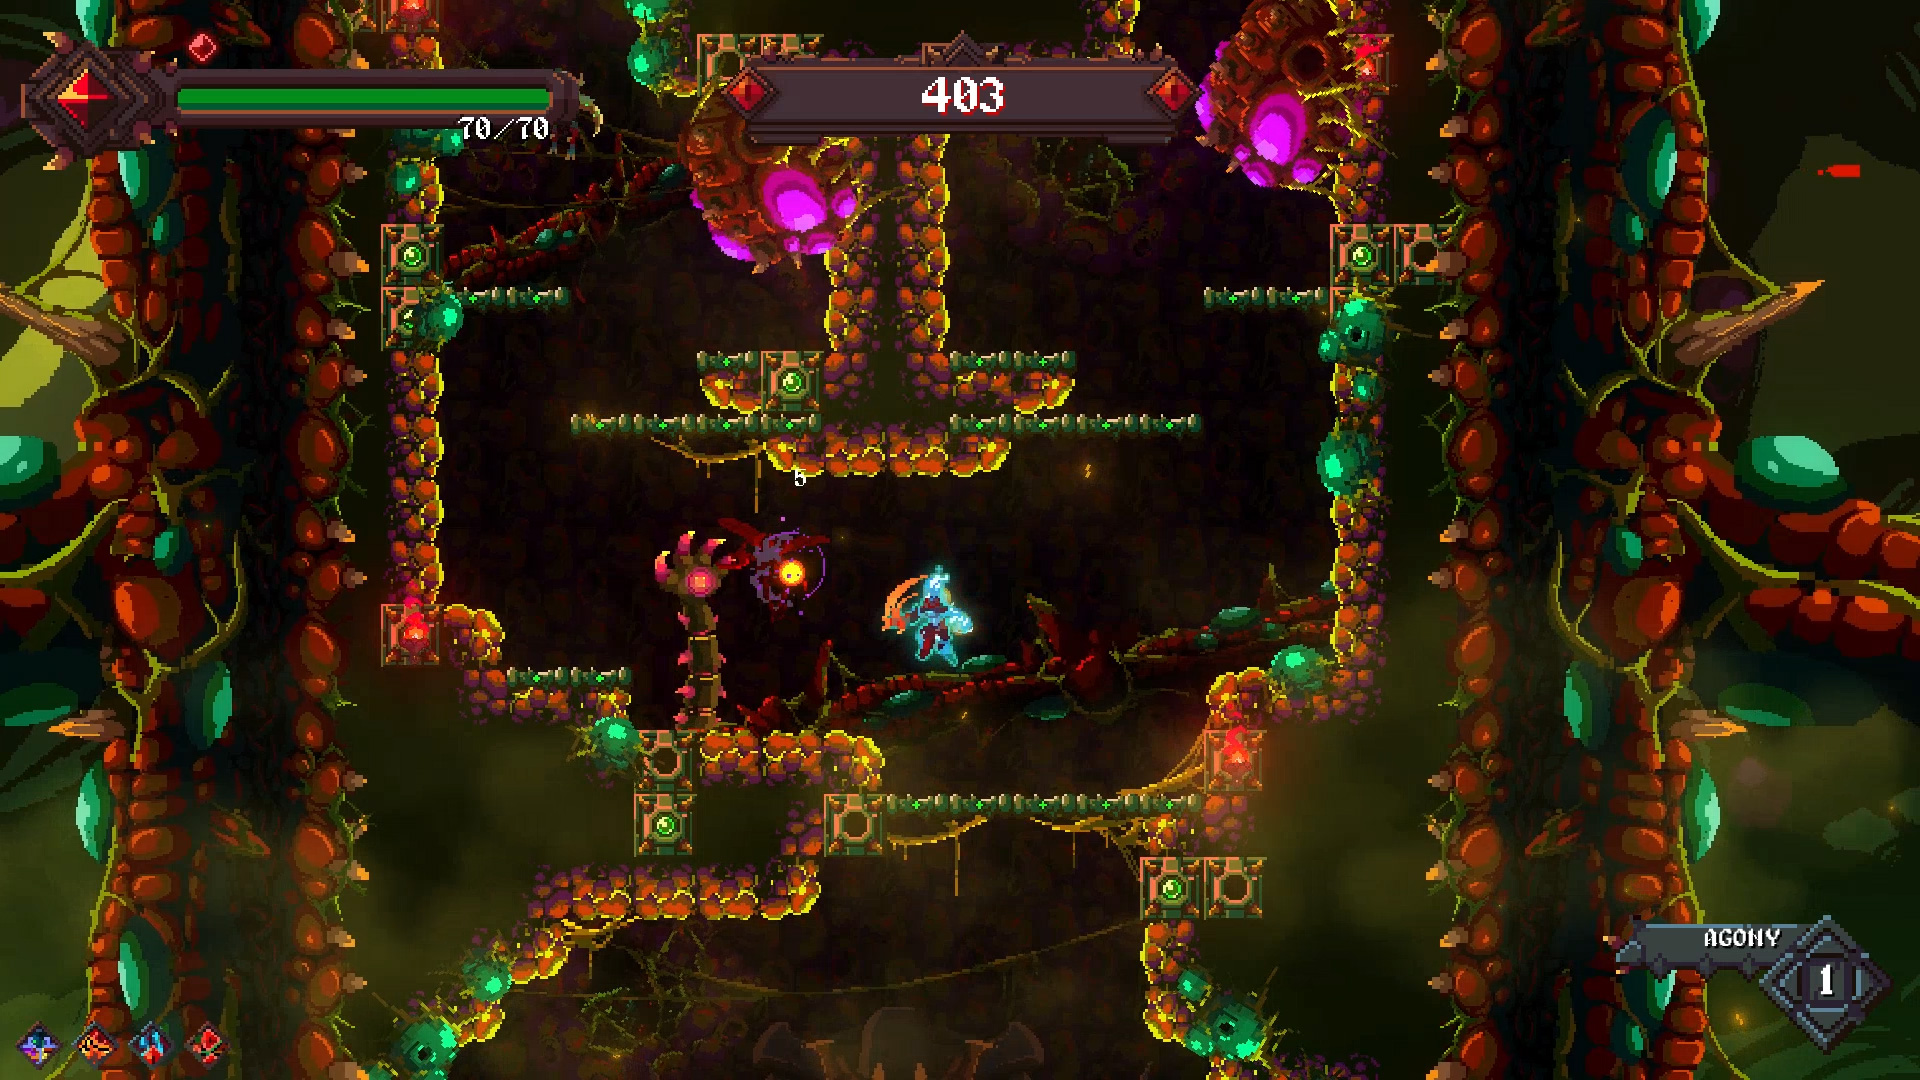 Rising Hell is a roguelite action-platformer about battling to the top of a hellish tower screenshot